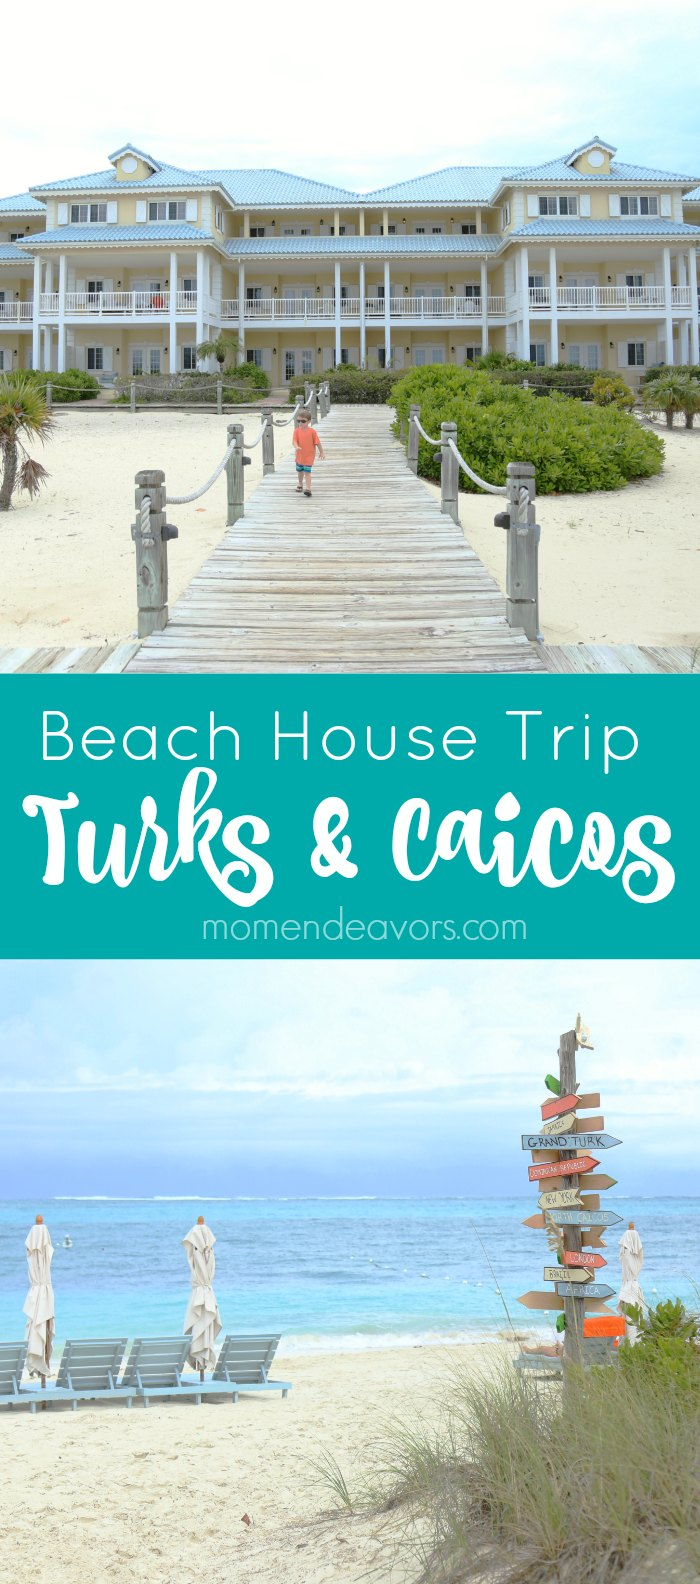 Beach House Turks & Caicos Trip Idea